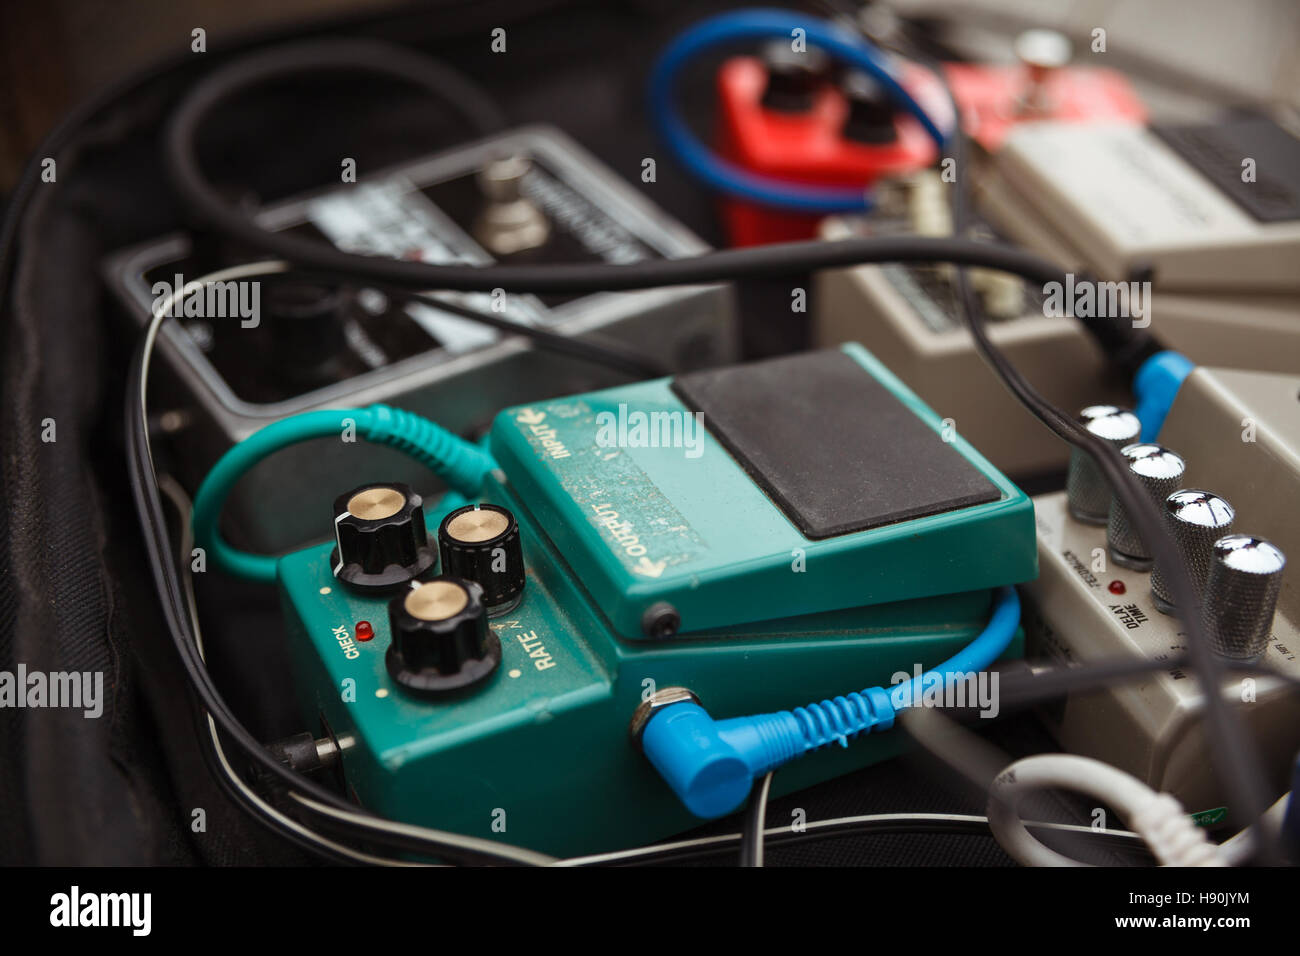 distortion effect pedals and amplifiers Selective focus - Stock Image